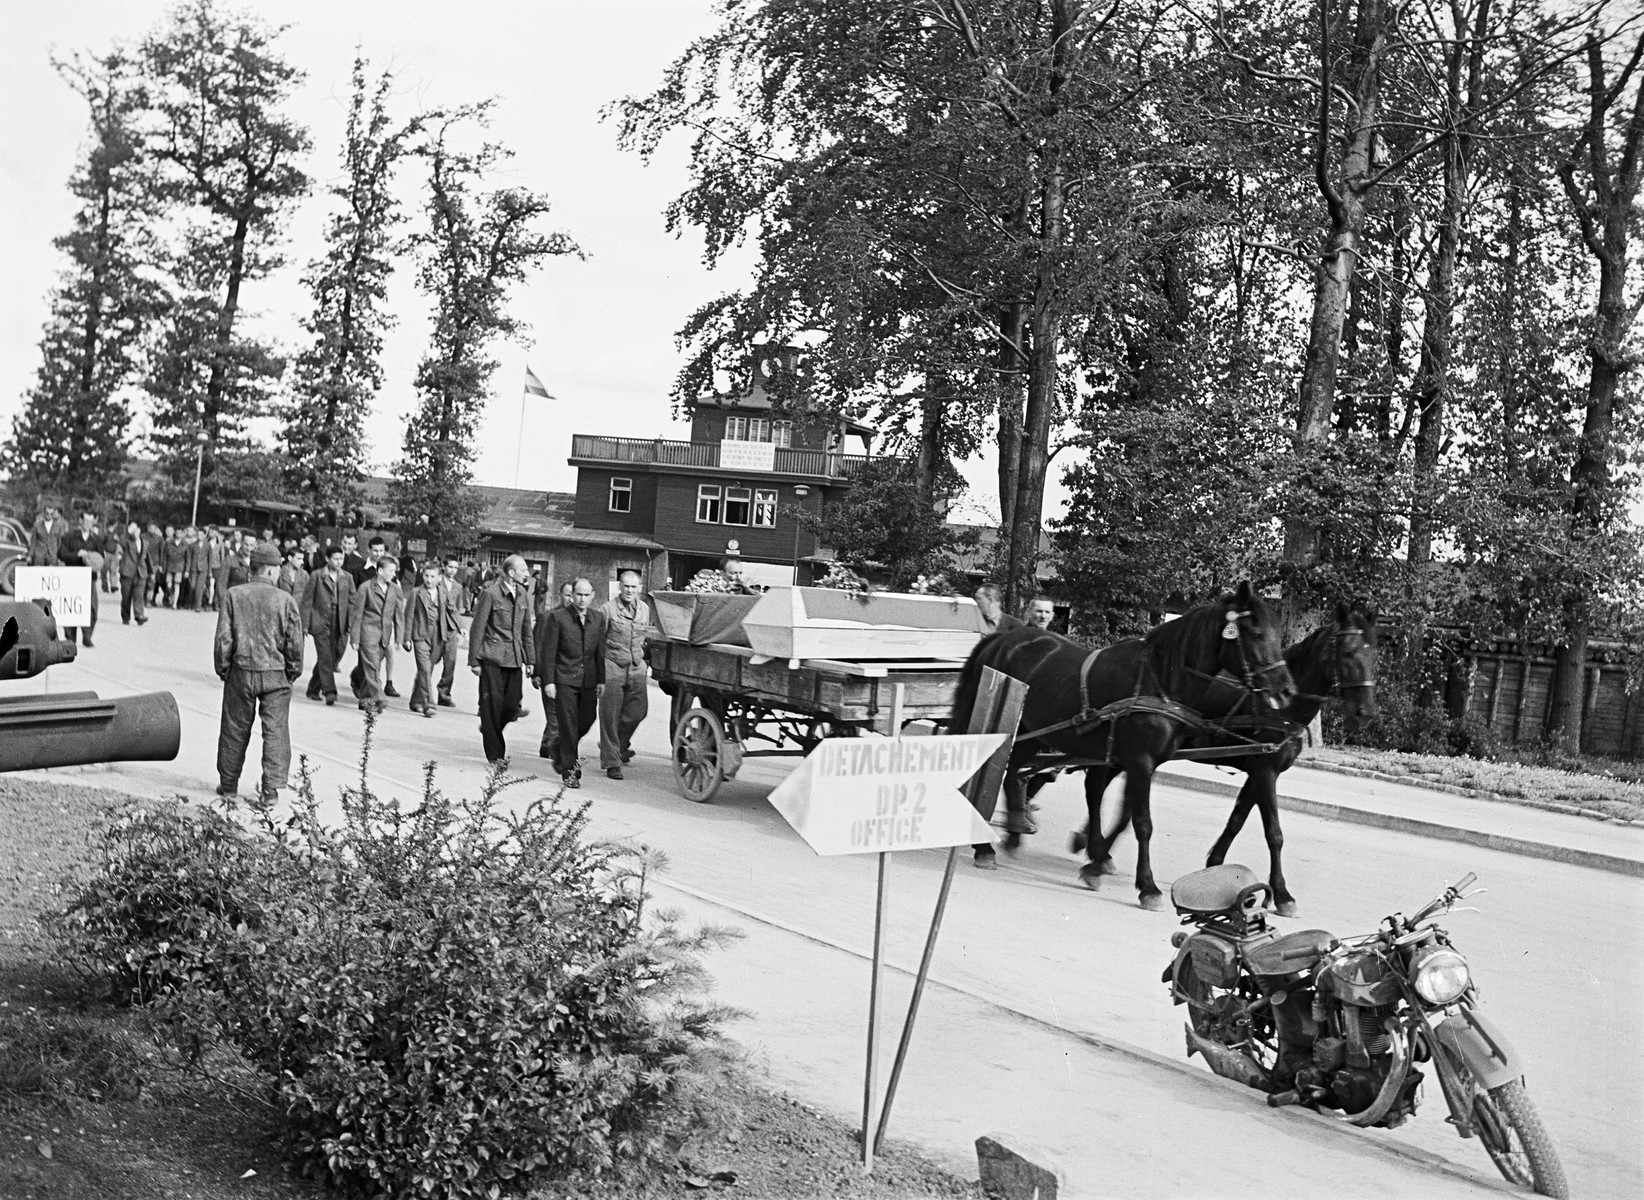 Former prisoners of Buchenwald follow a horse-drawn cart carrying caskets down a street outside the camp.